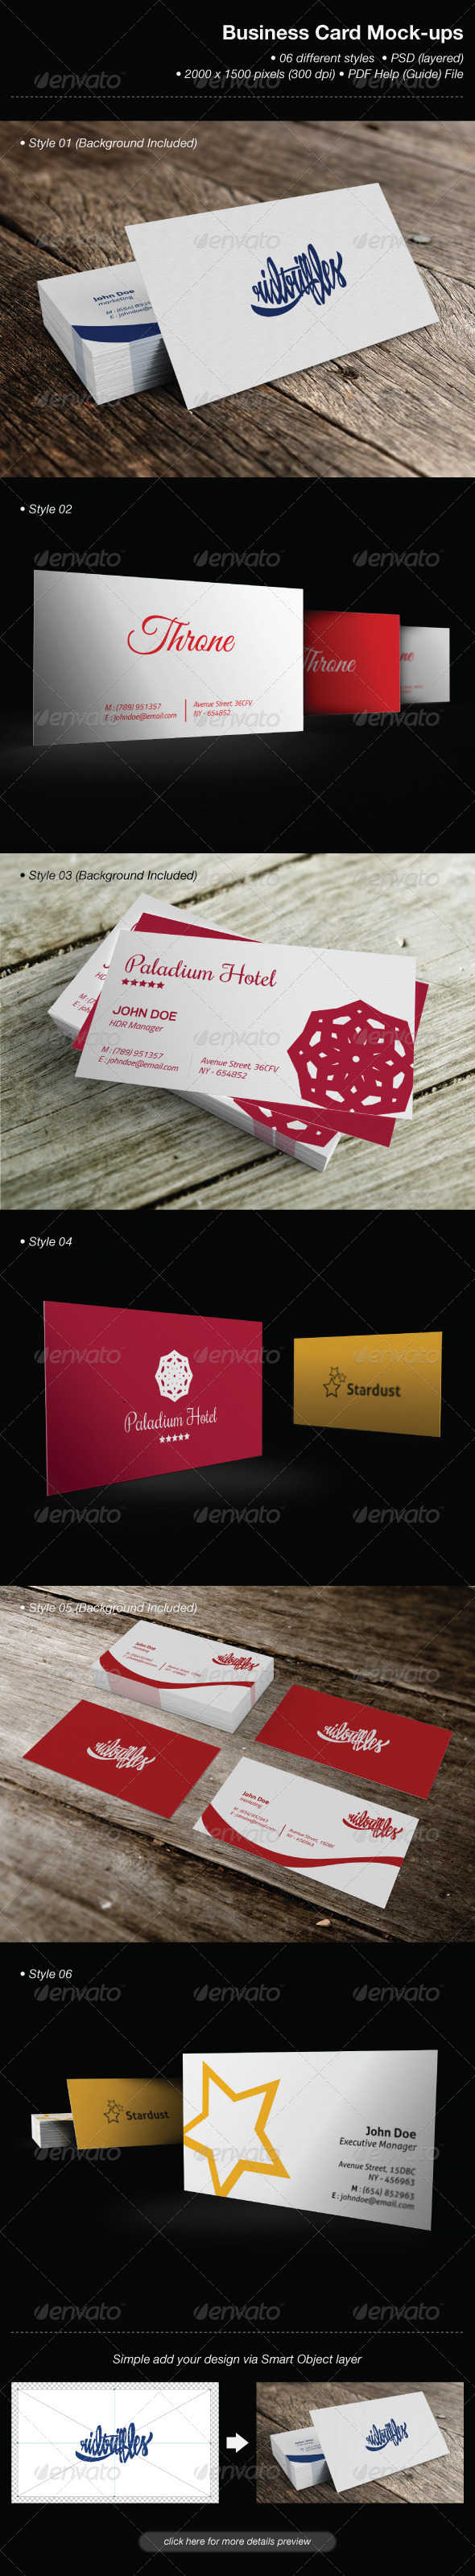 GraphicRiver Business Card Mock-Ups 6495612